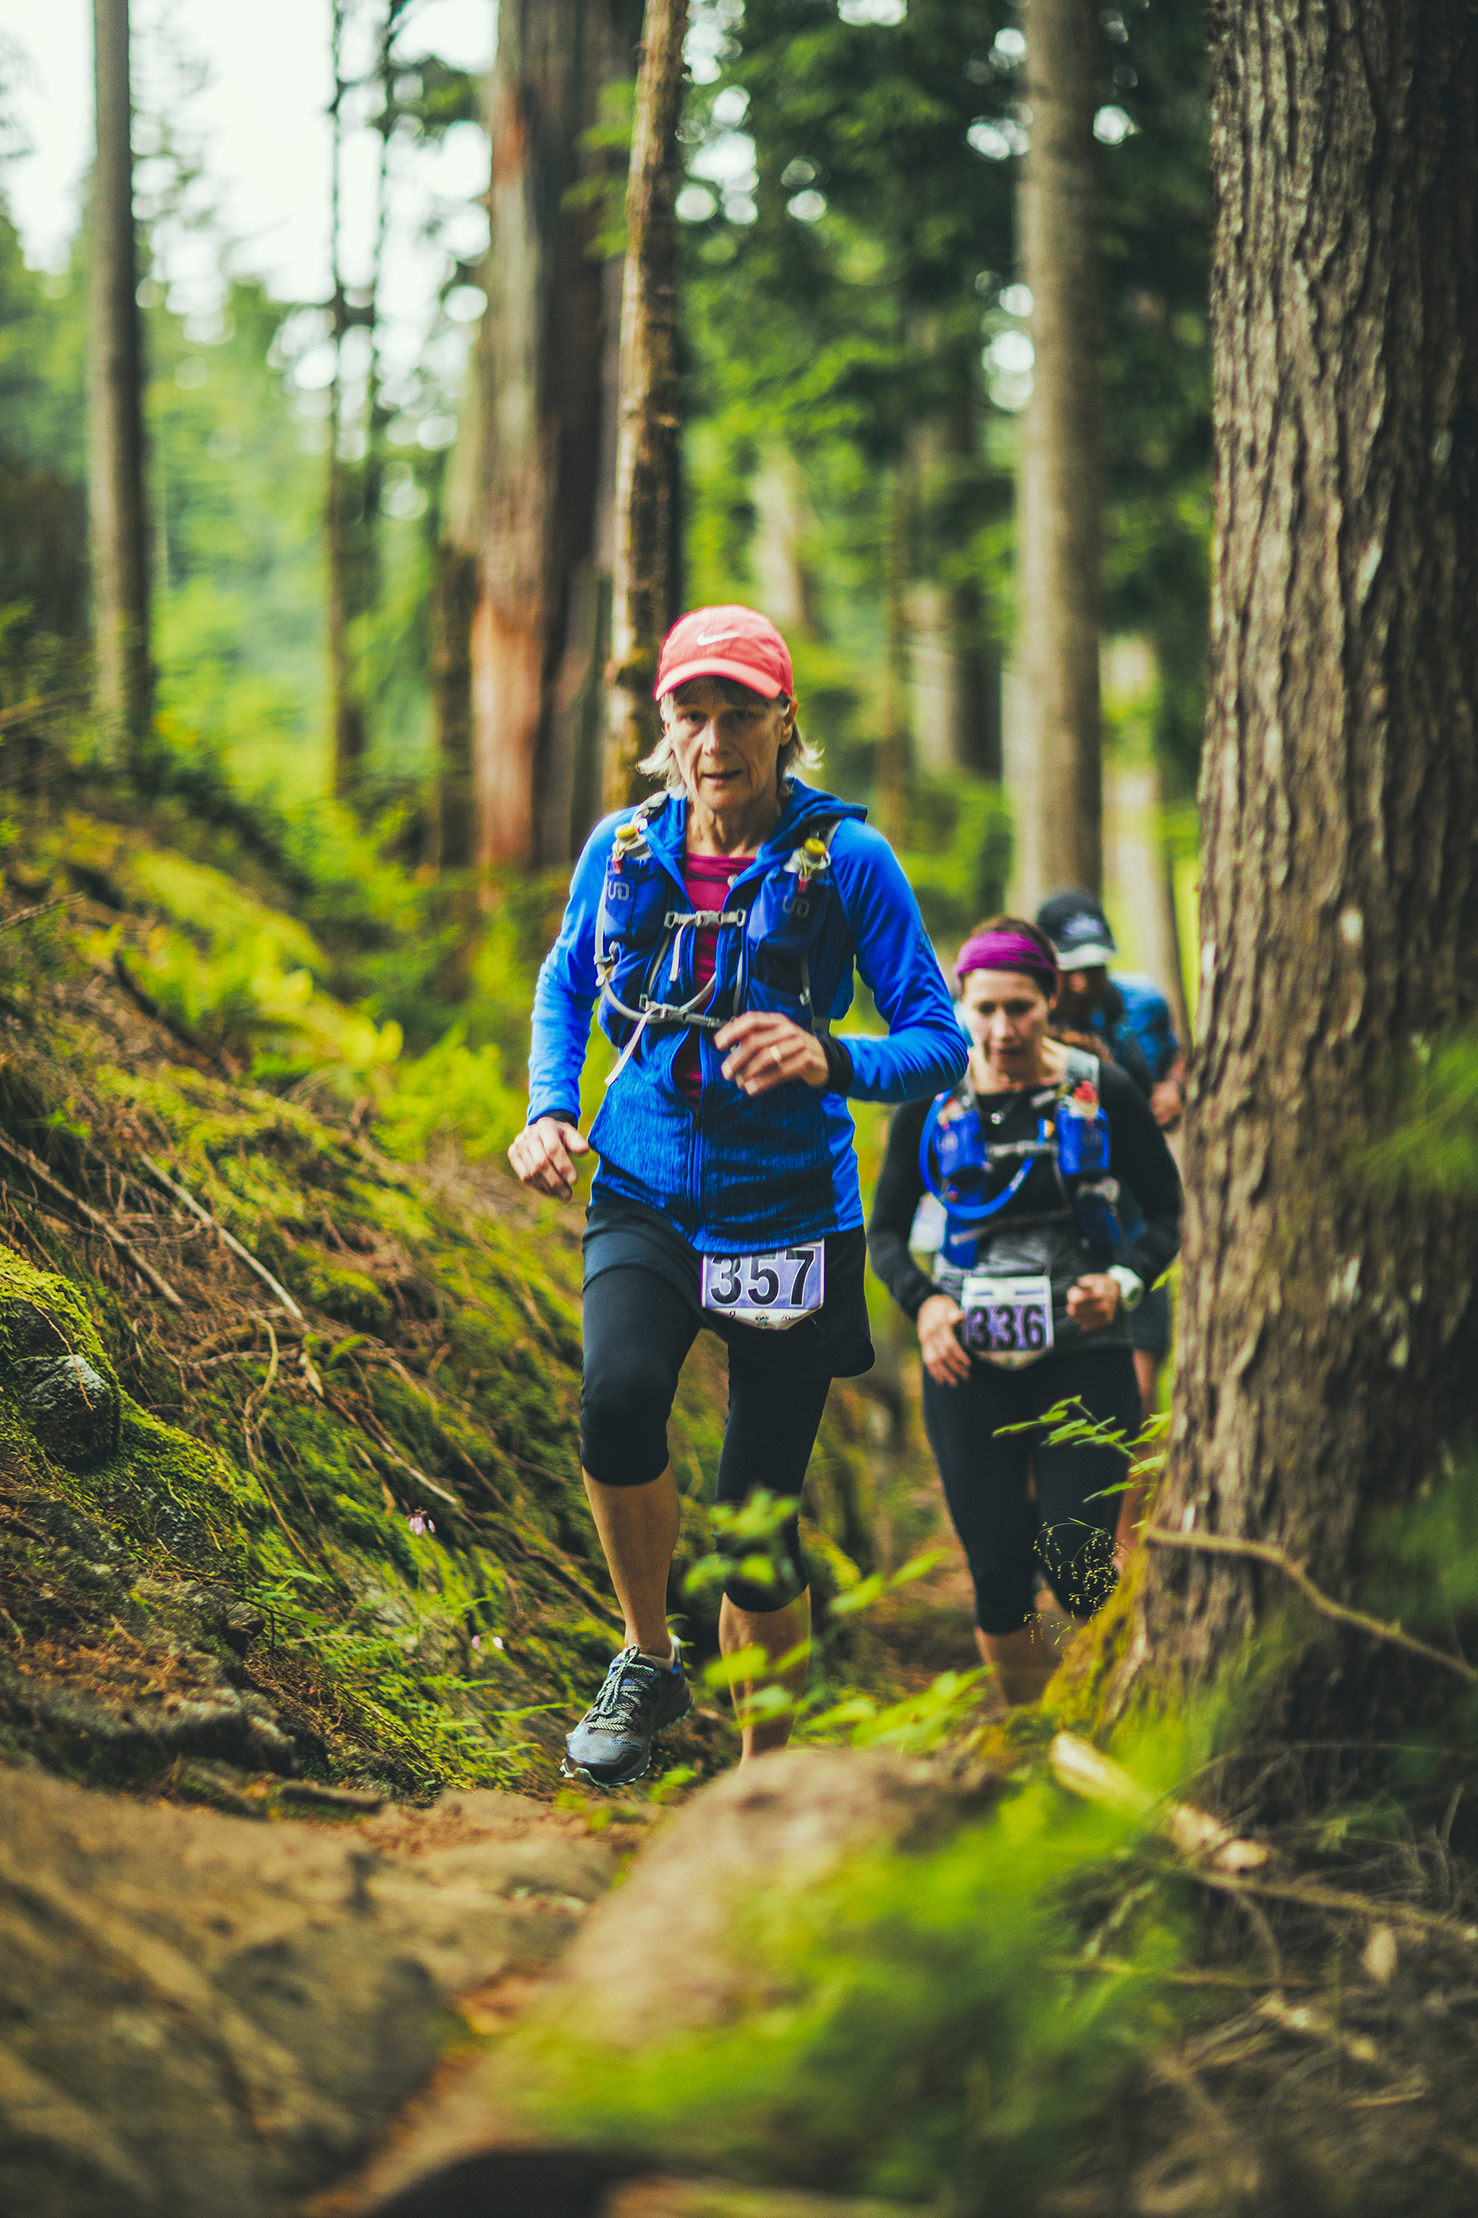 Fraser Valley Trail Races - Bear Mountain - IMG_1536 by Brice Ferre Studio - Vancouver Portrait Adventure and Athlete Photographer.jpg